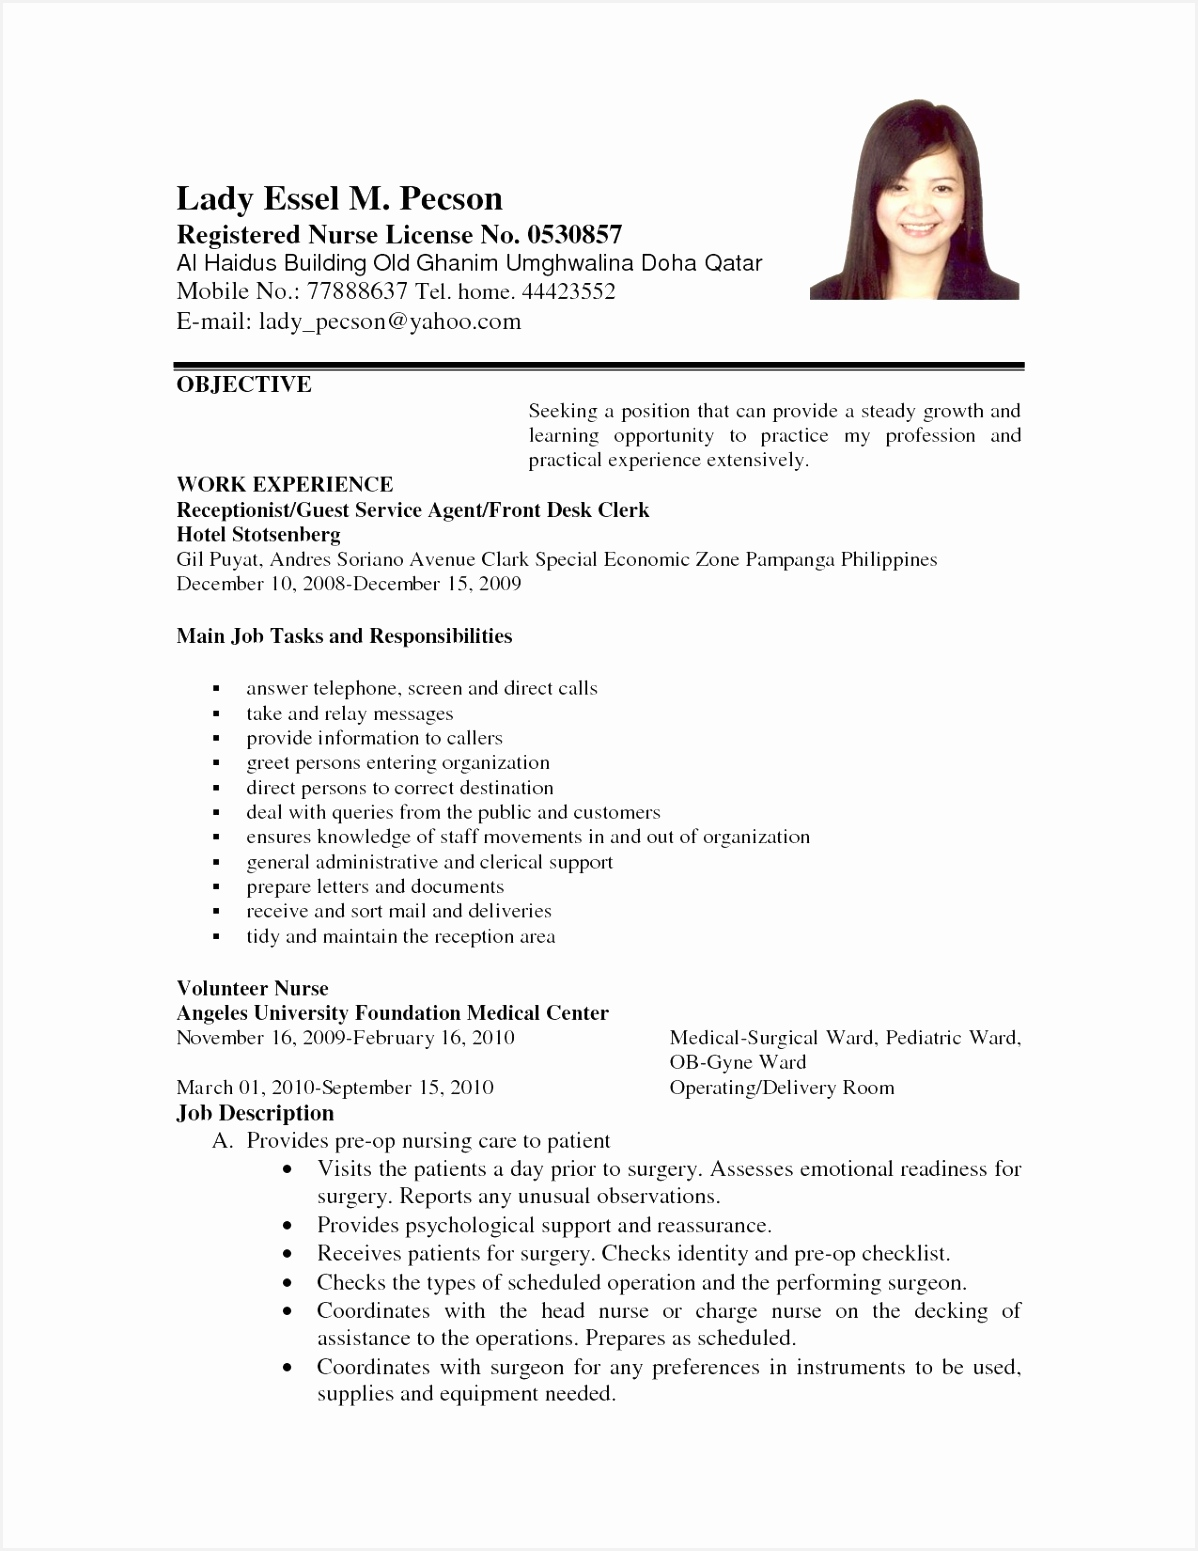 Document Clerk Sample Resume Ocosk Beautiful Cover Letter for Receptionist Awesome Sample Actors Resume New Best Of 7 Document Clerk Sample Resume